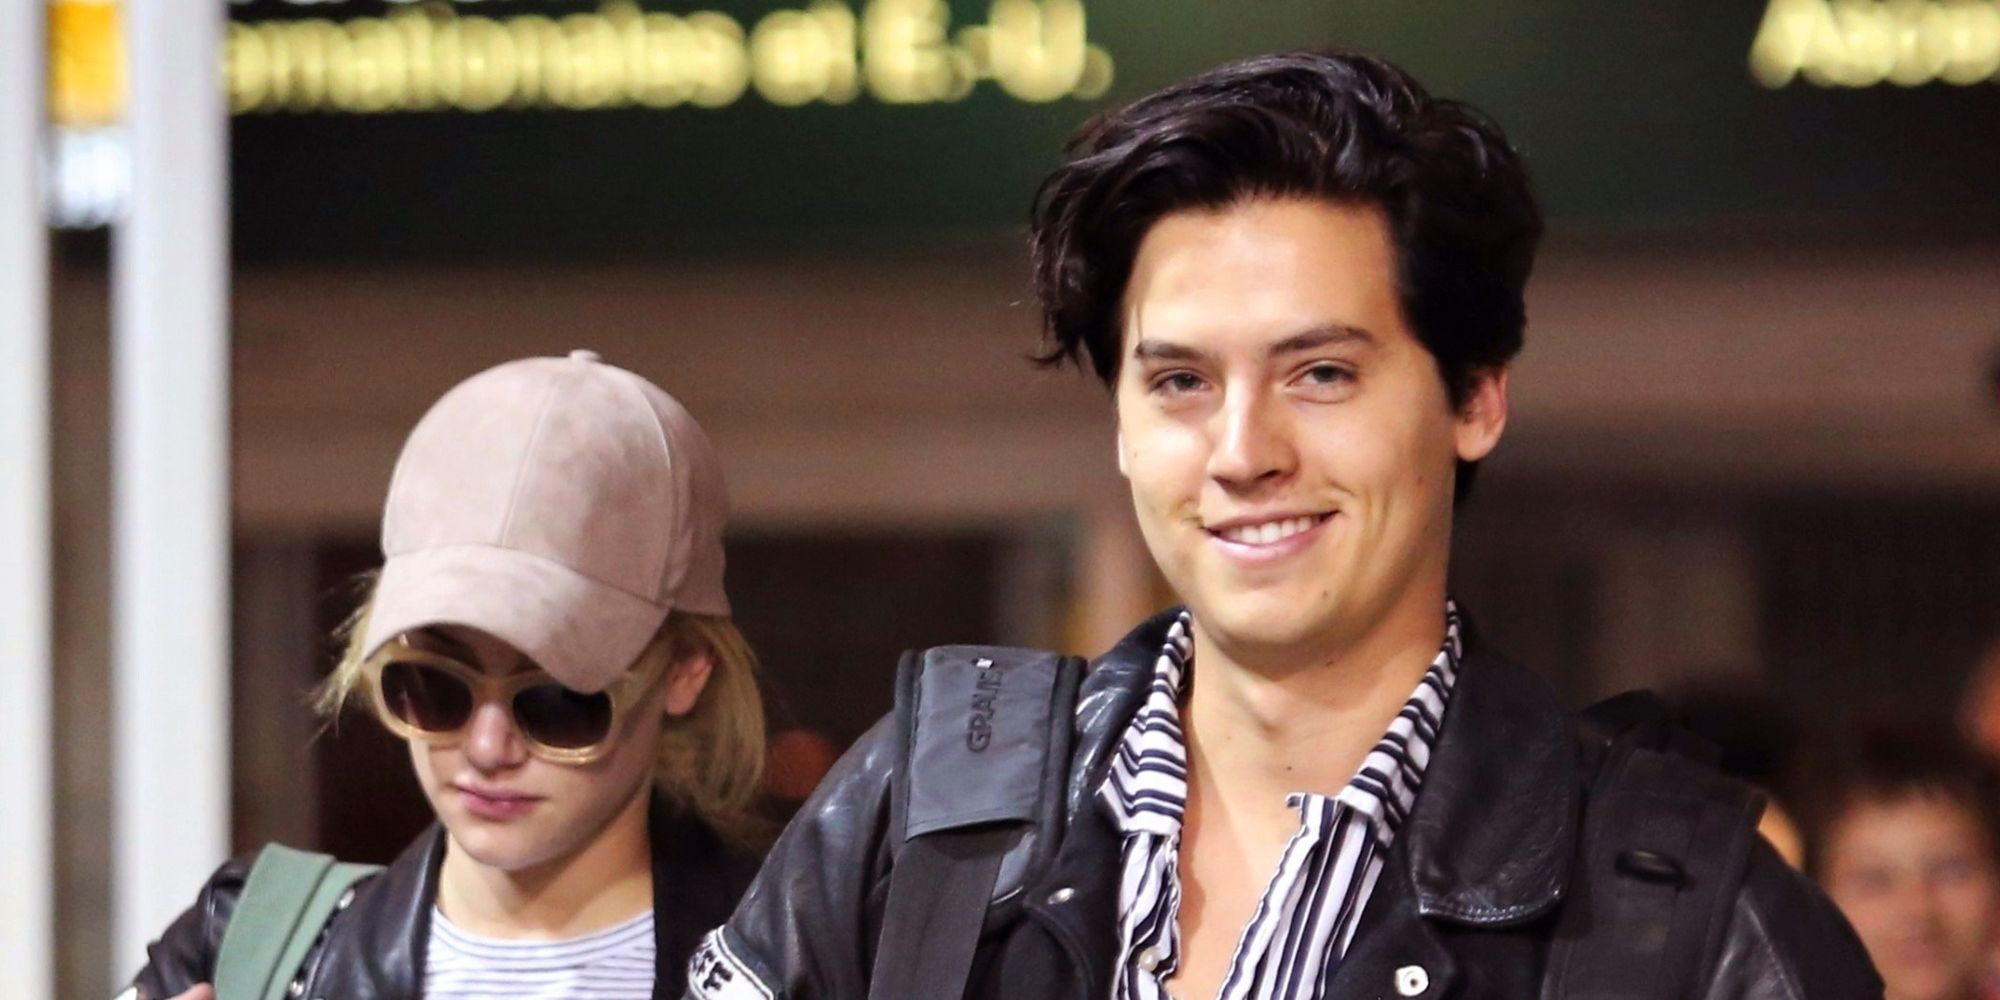 Are cole sprouse and lili reinhart actually dating